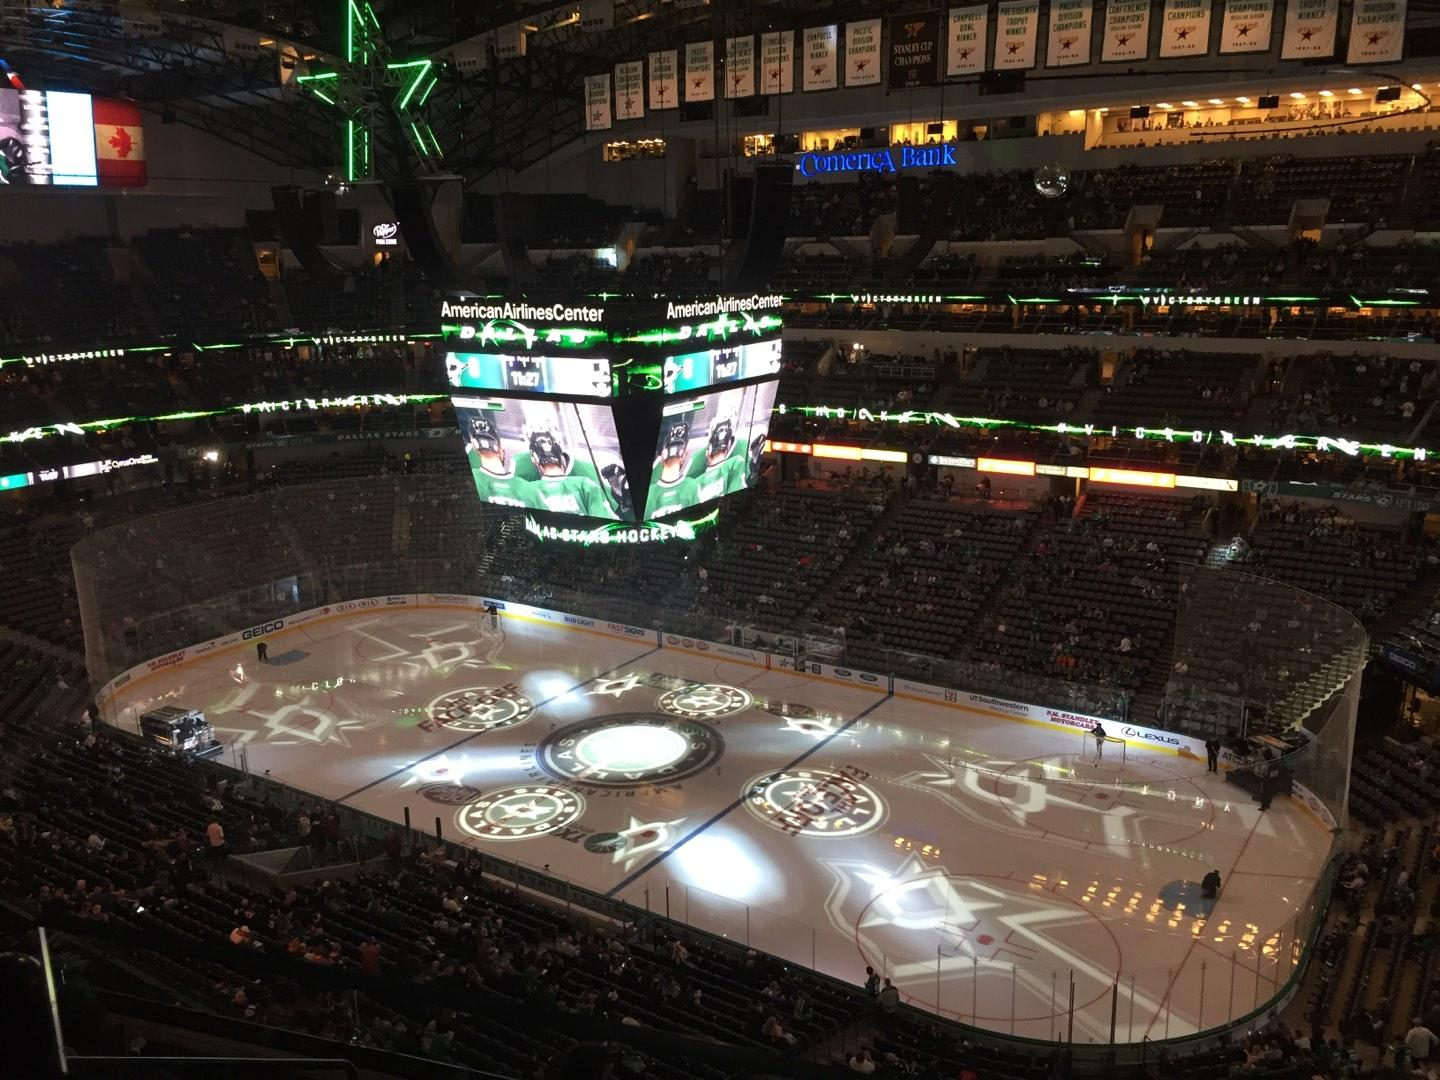 American Airlines Center Section 323 Row F Seat 6